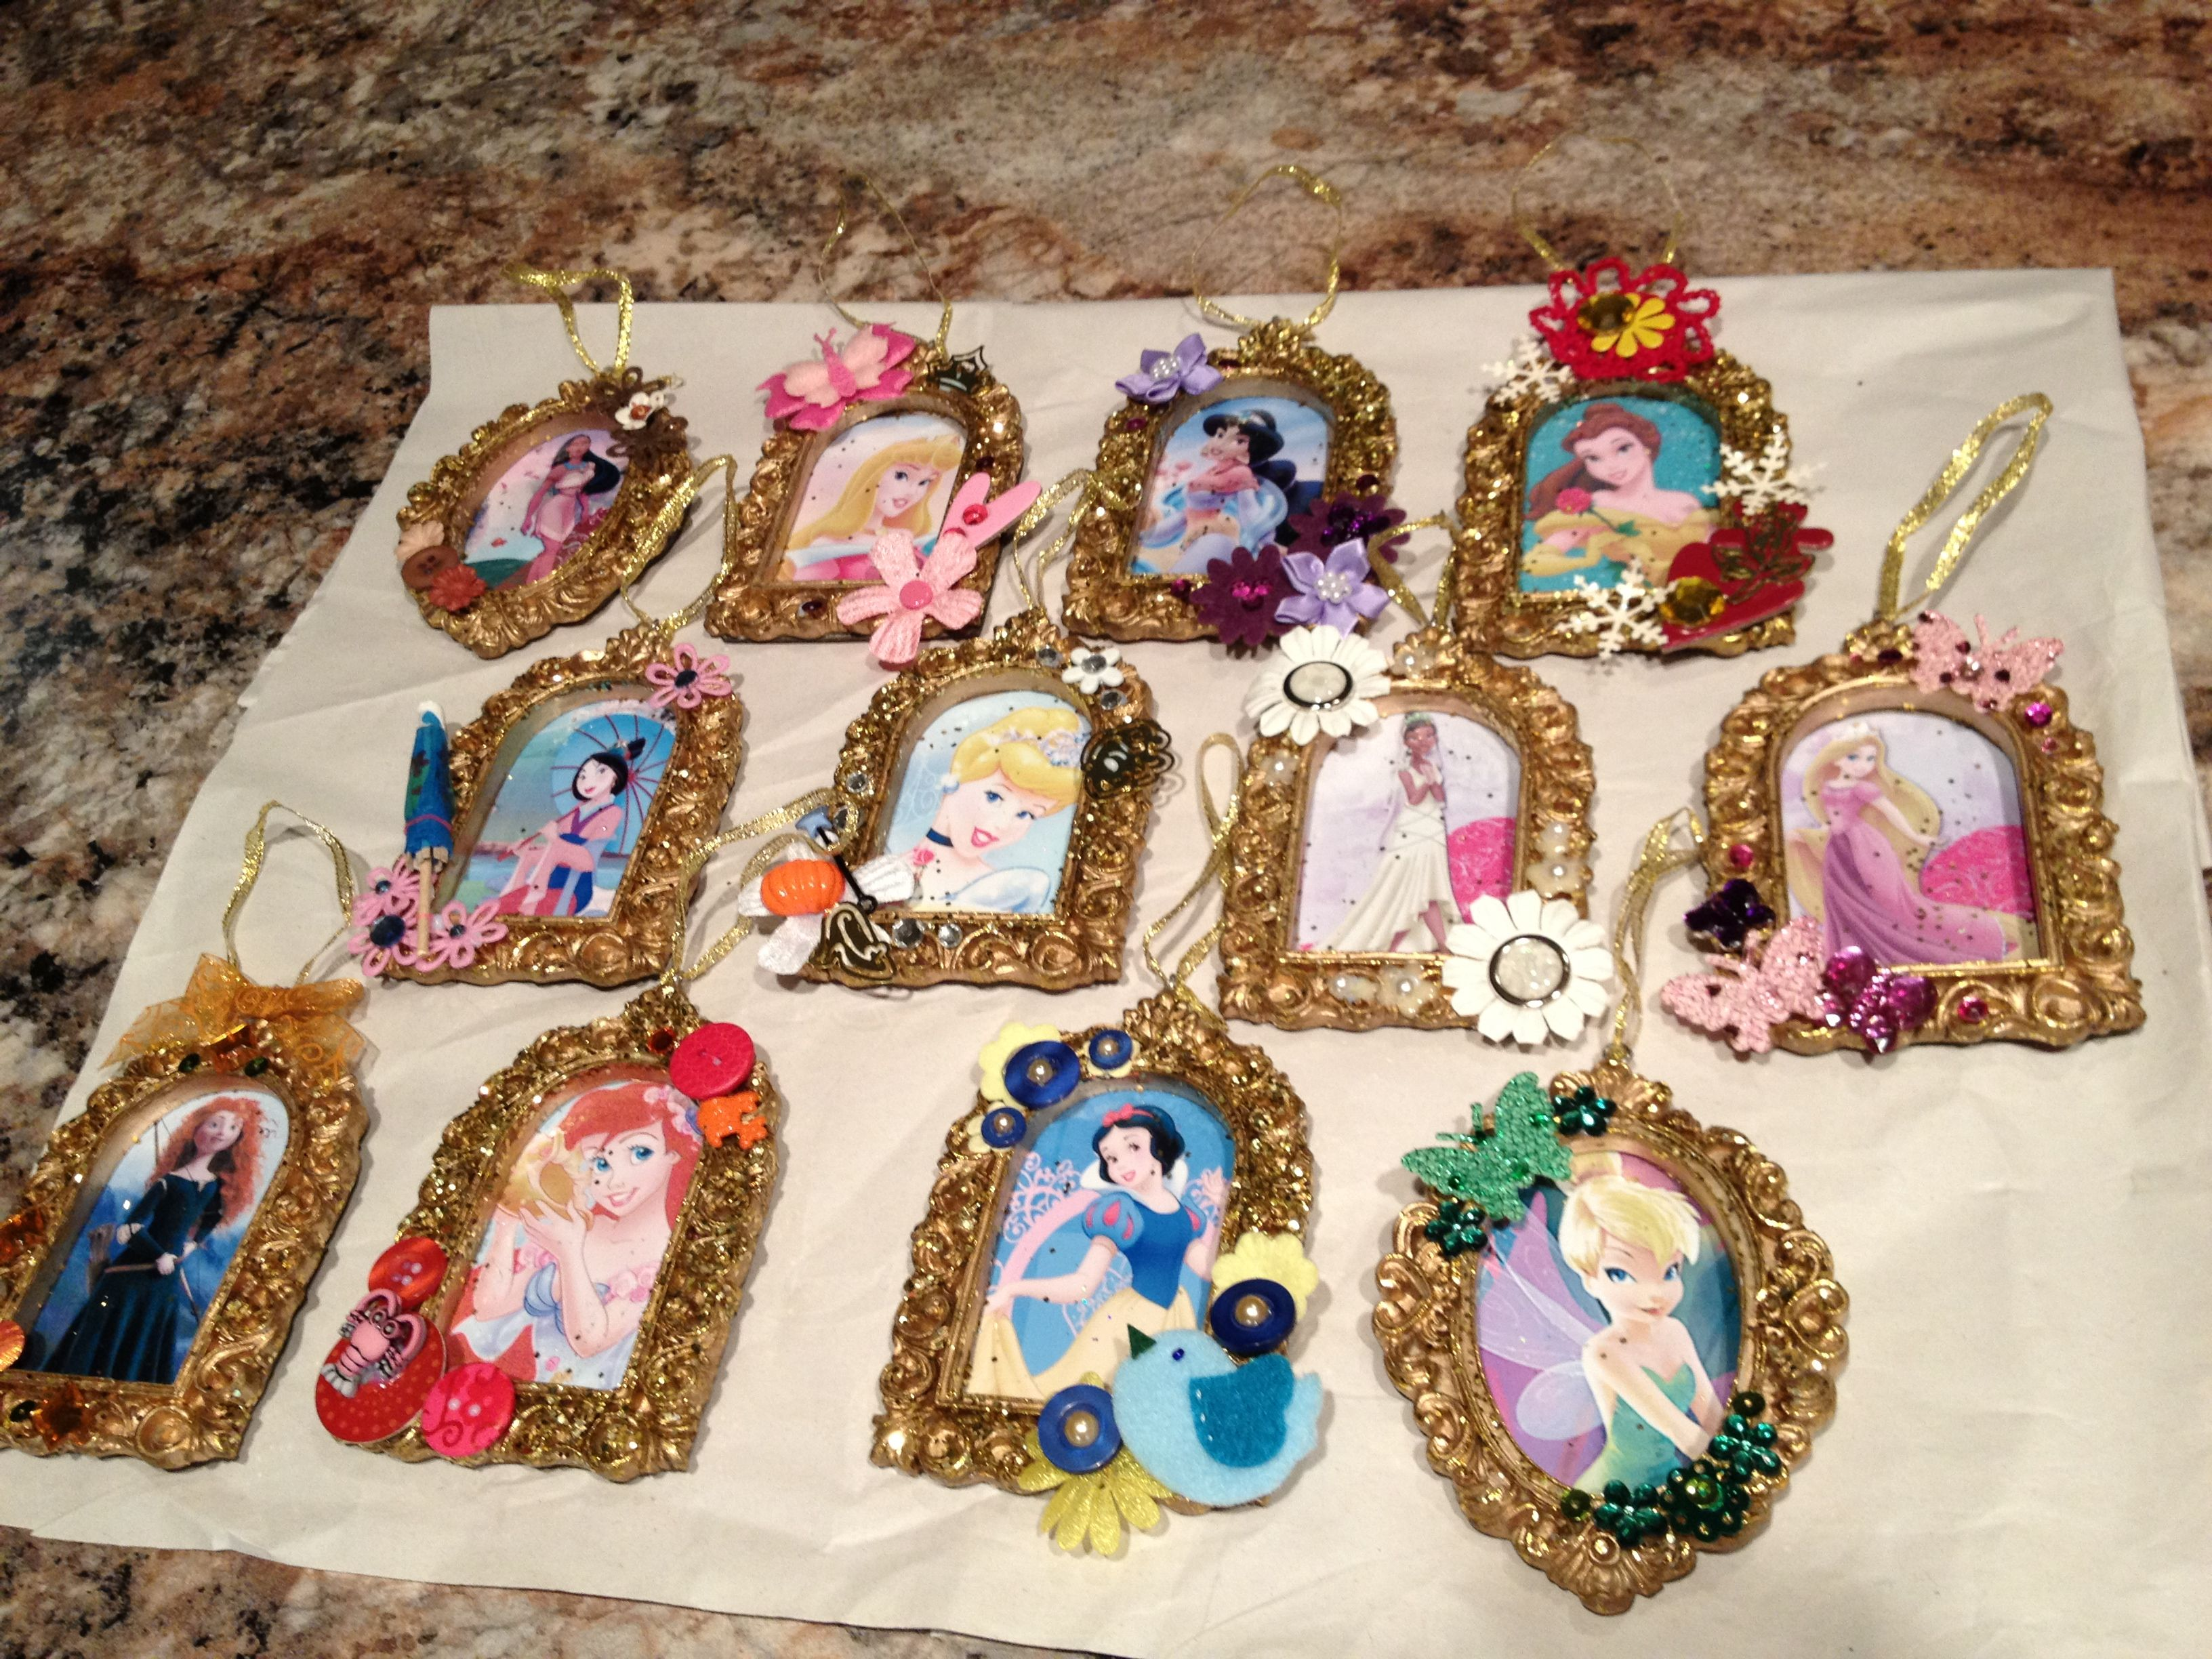 Scrapbook paper dollar general - Ornaments Made From Disney Clipart Printed On Photo Paper Glittery Gold Frame Ornaments From Dollar General And Various Embellishments To Suit Each